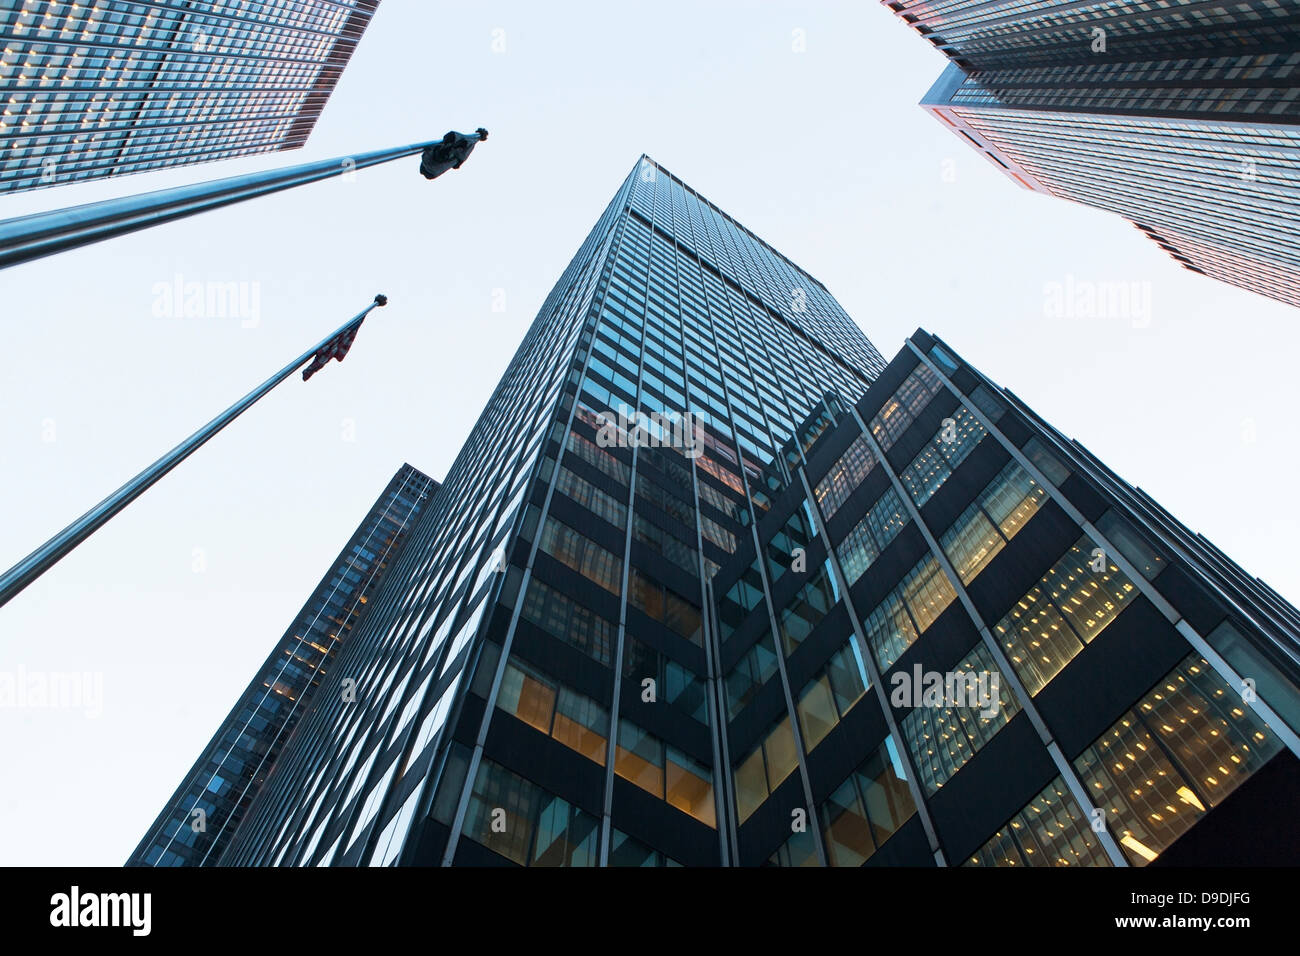 View of skyscrapers from below Stock Photo